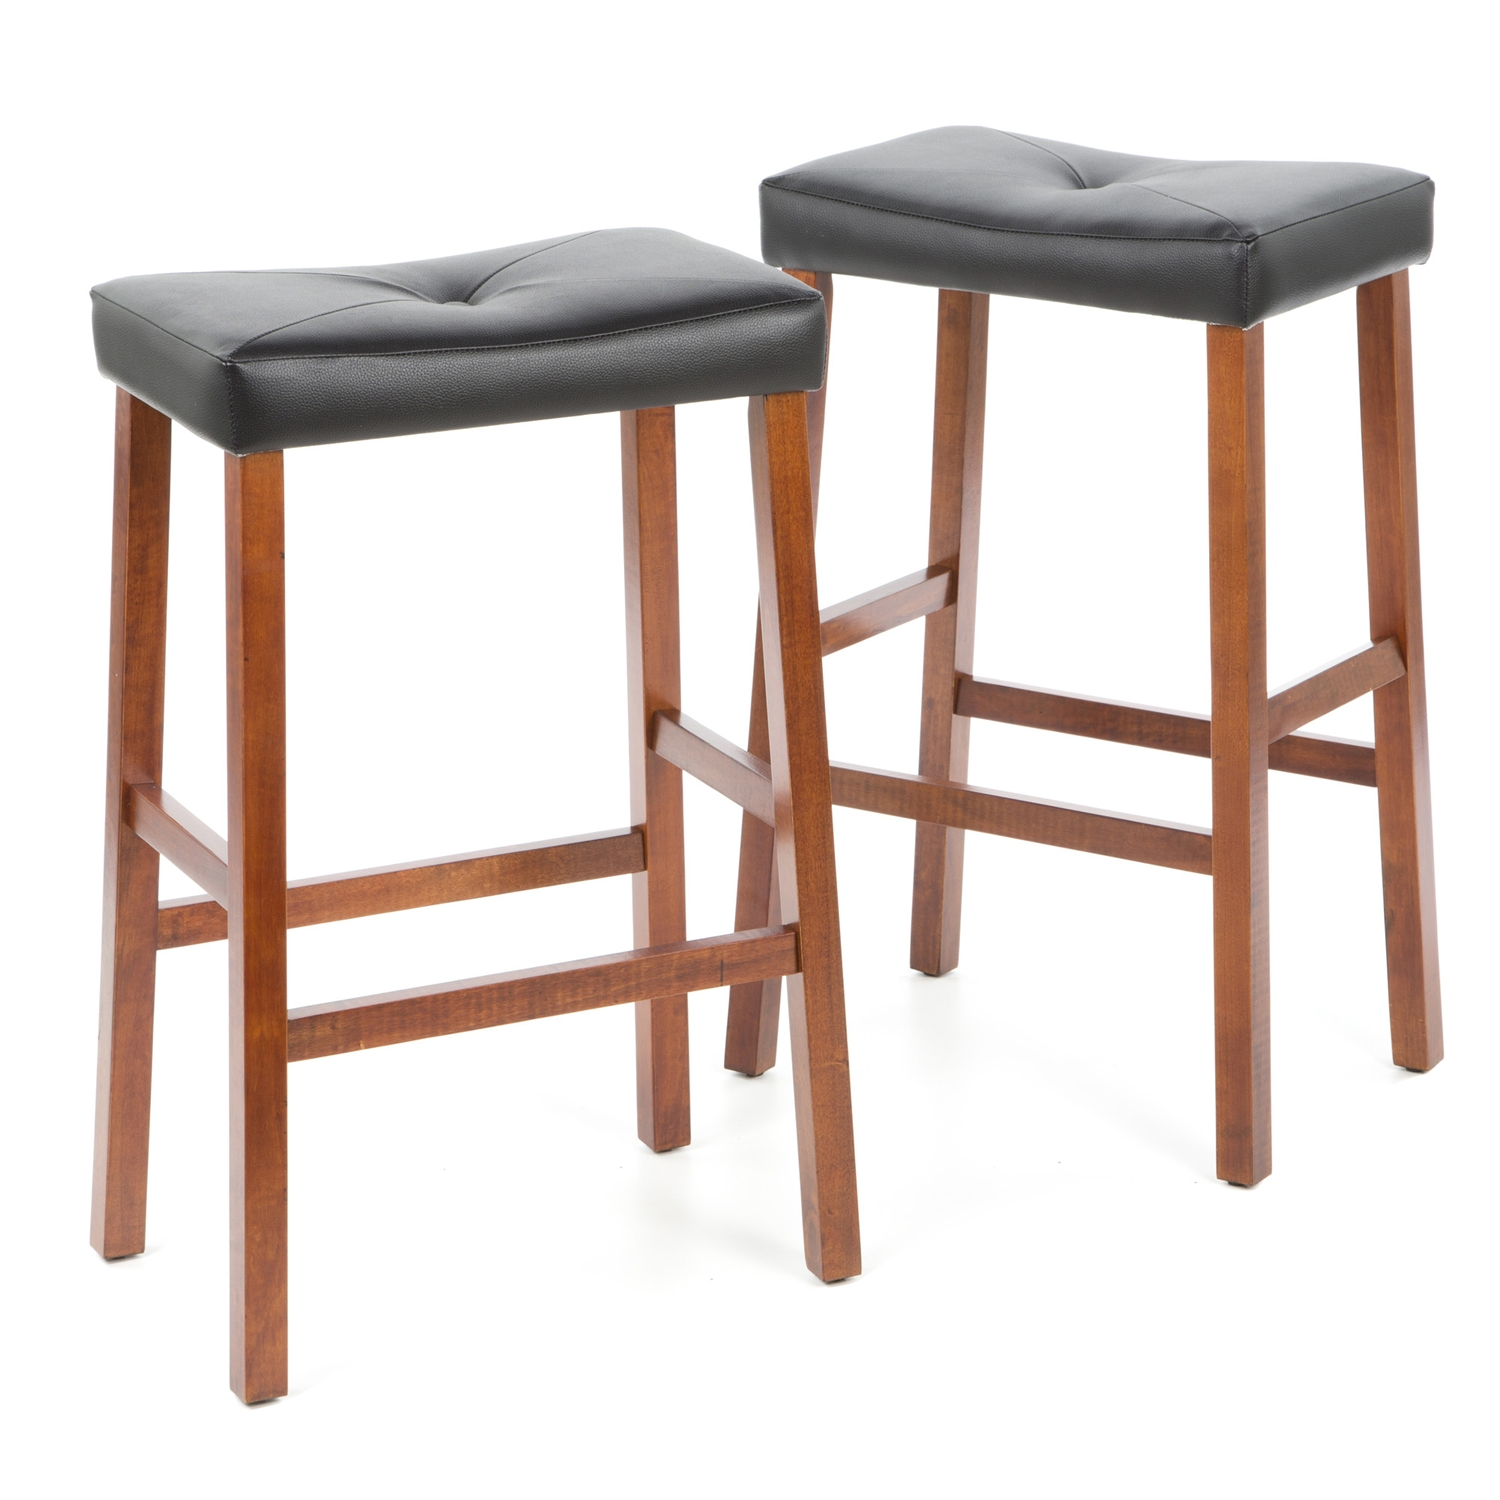 """Comfort and style combined. This Set of 2 - Upholstered Faux Leather Saddle Seat Barstool in Cherry features solid hardwood construction. The cushioned saddle seat is upholstered in faux leather vinyl, that is stain and spill resistant. Four solid hardwood leg stretchers for durability; Style: Traditional; Seat Height Type: Bar (28""""-33""""); Seat Style: Saddle; Frame Finish: 1: Black; Frame Finish: 2: Cherry; Frame Finish: 3: Mahogany; Seat Color: Black; Leg/Base Type: 4 legs; Footrest Included: Yes."""